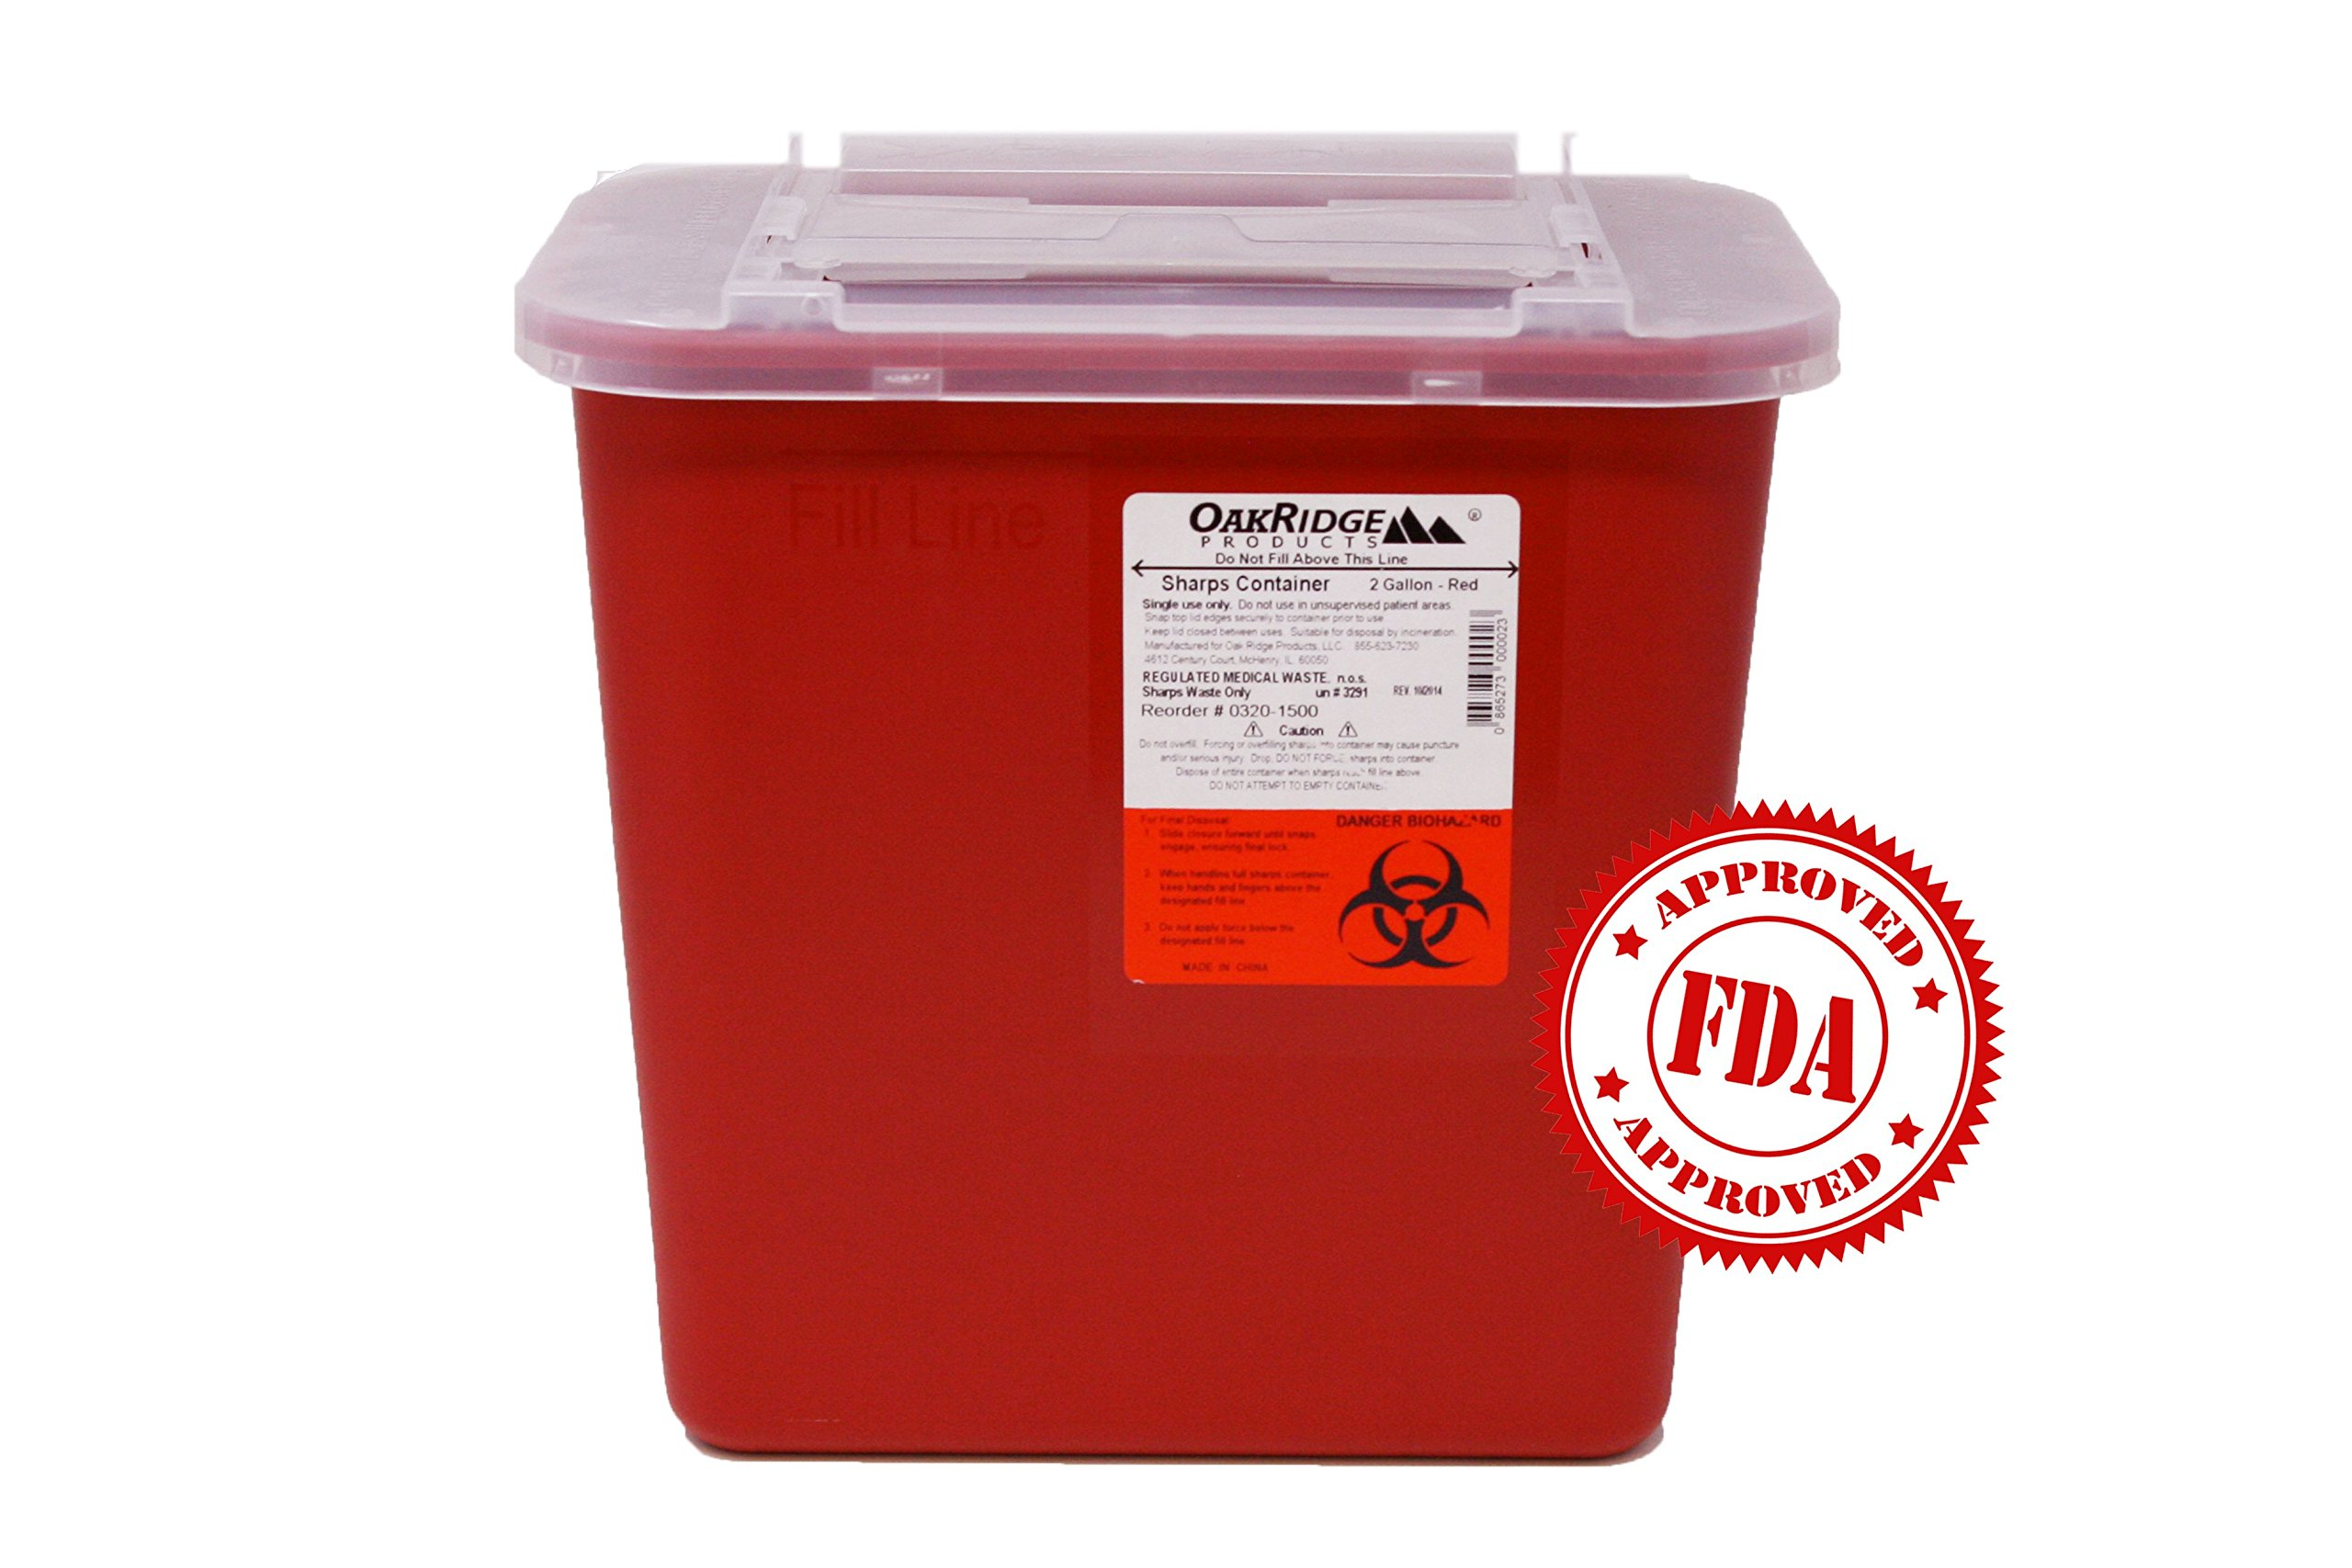 OakRidge Products 2 Gallon Size | Sharps Disposal Container | Holds hundreds of needles